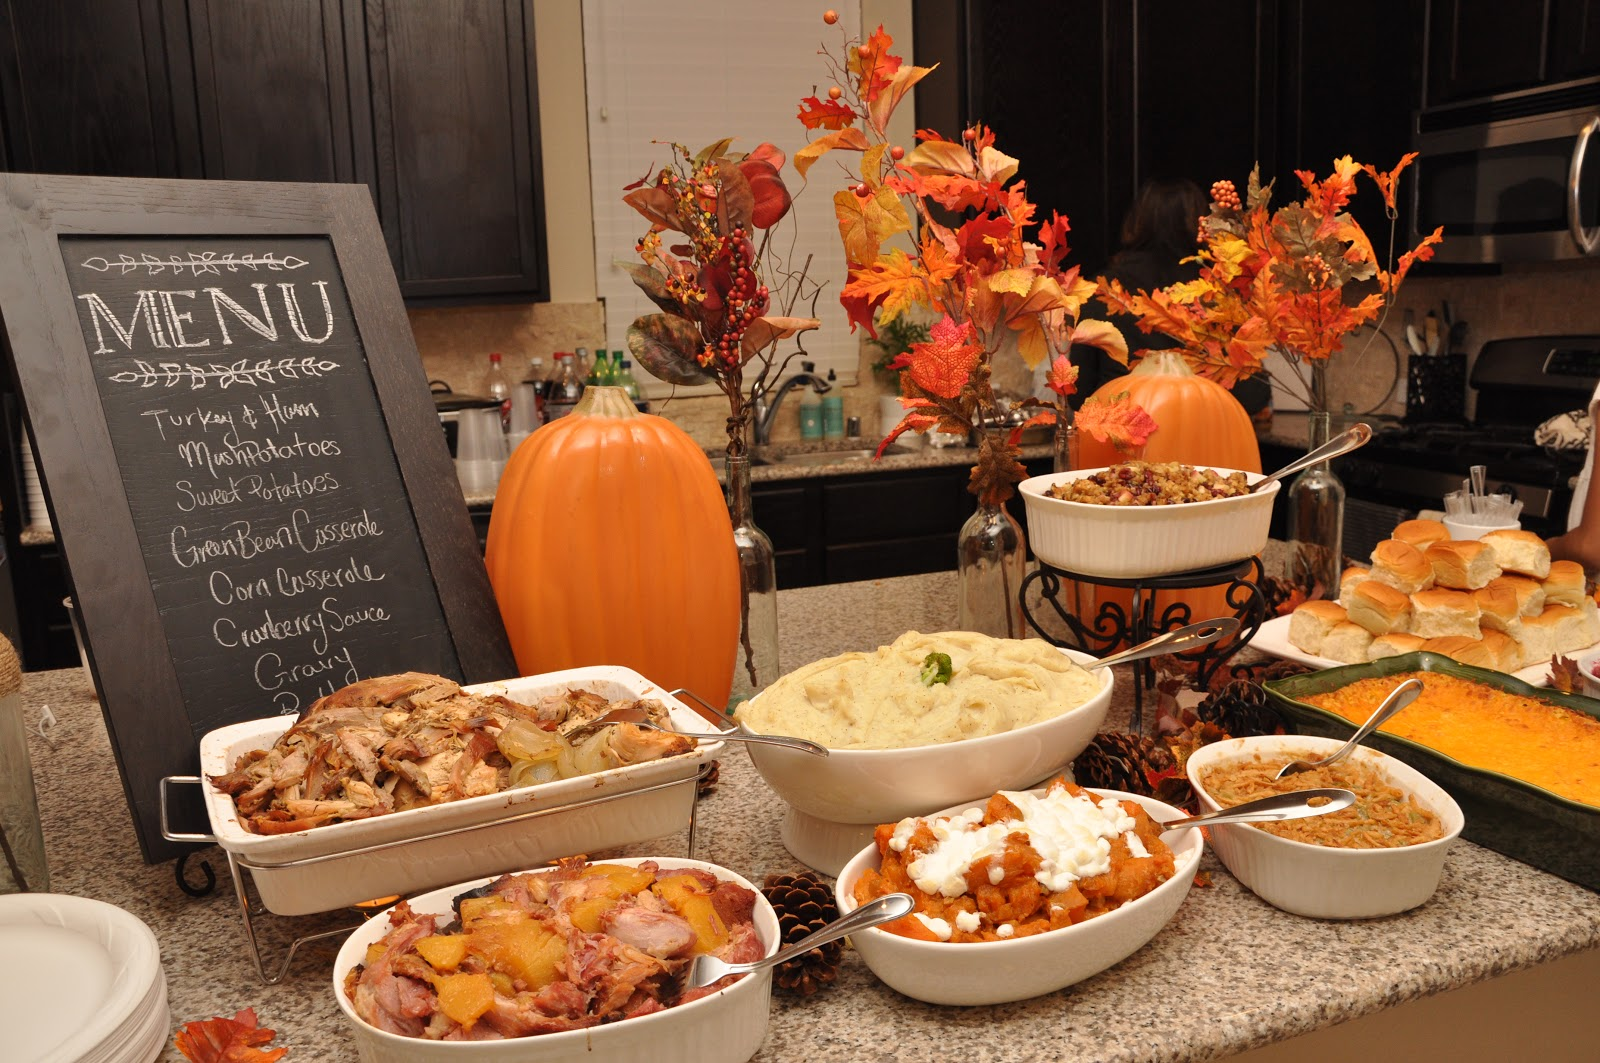 Countdown to thanksgiving 2016 tips for a stress free - Kitchen set up ideas ...